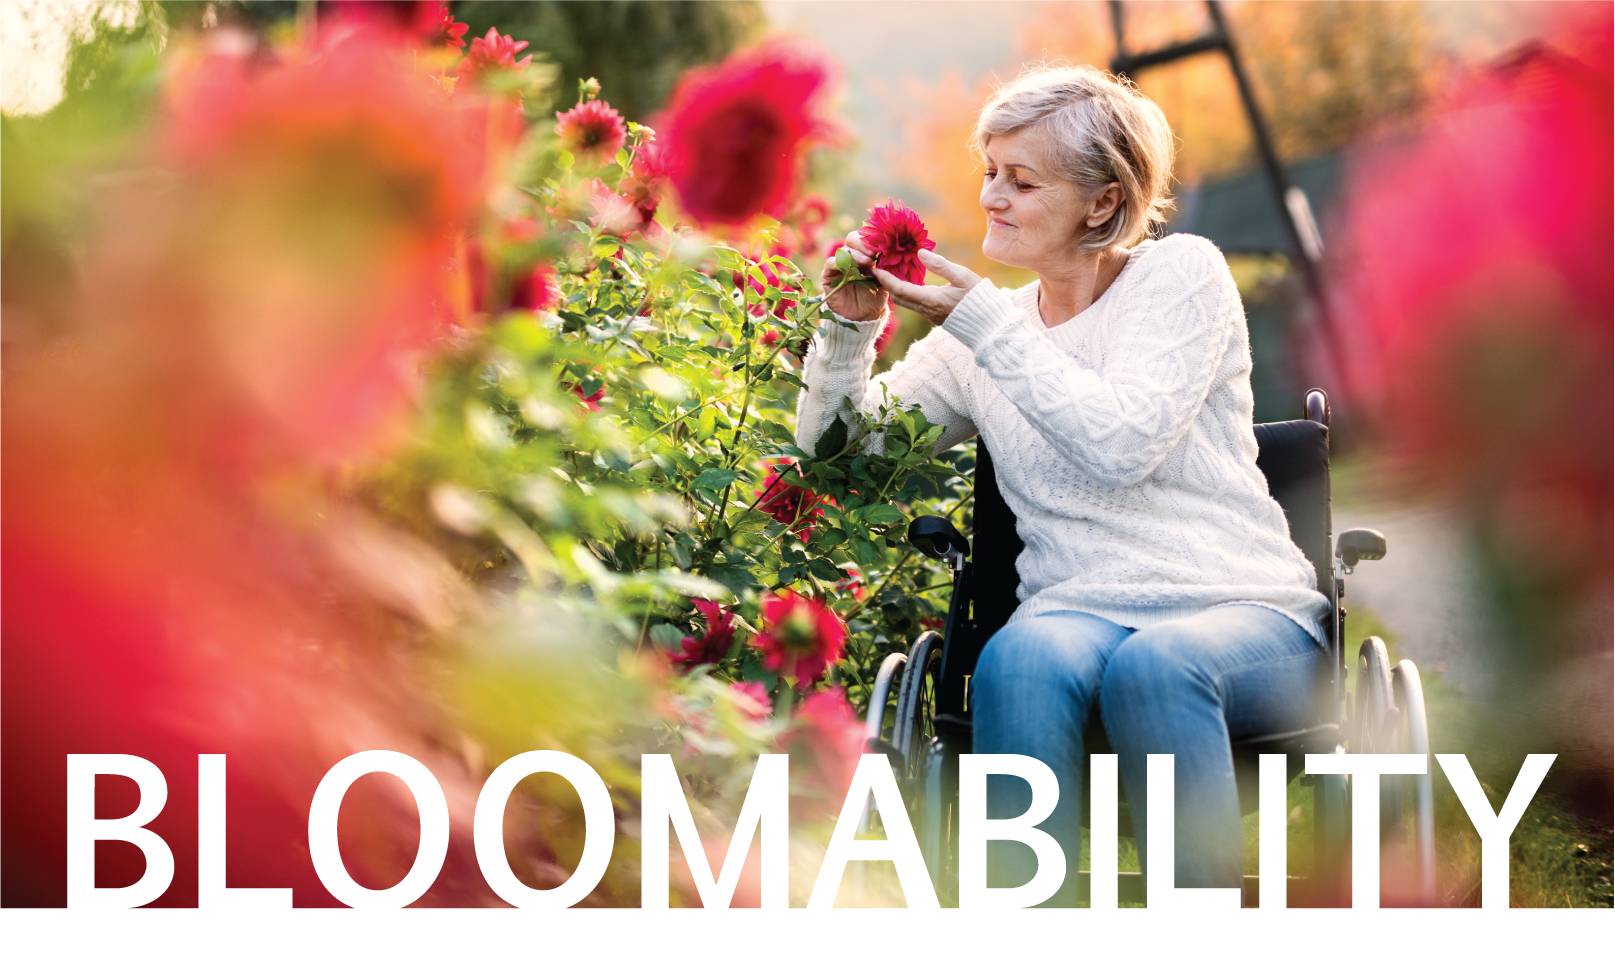 woman in wheelchair smelling flowers in garden with word bloomability over image